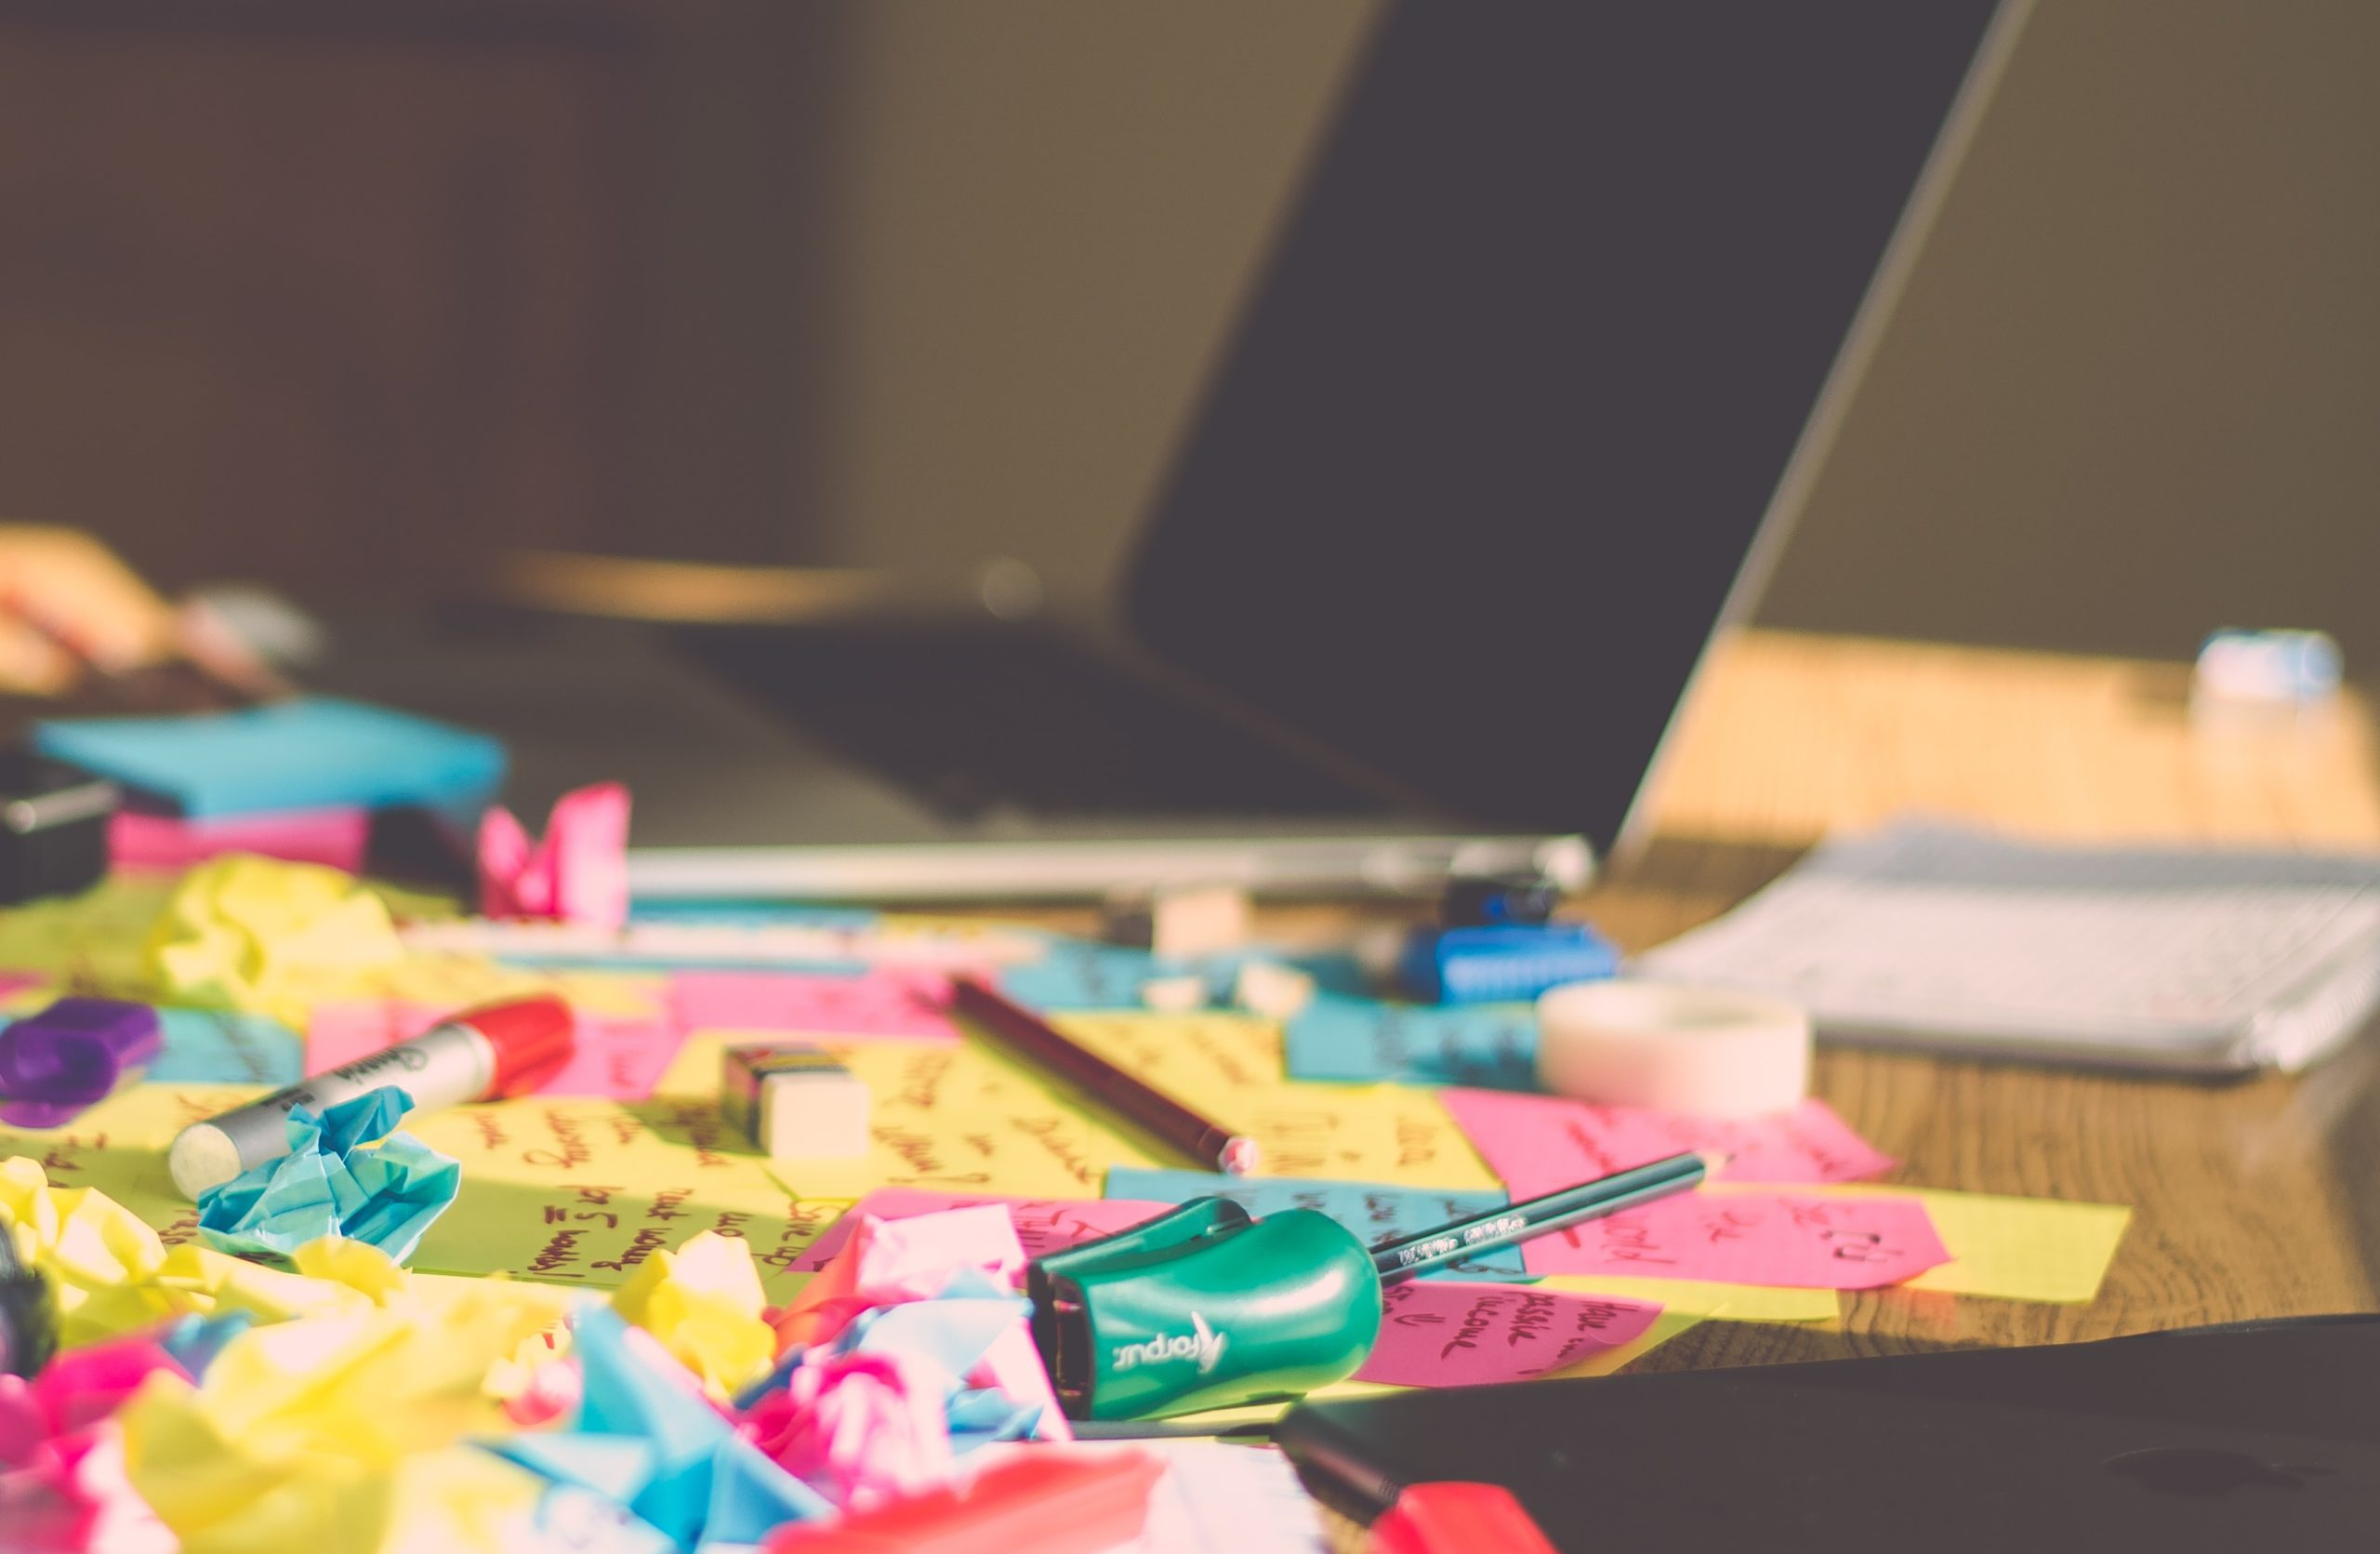 A laptop in the background is surrounded by multi-coloured screwed up post it notes.post it notes